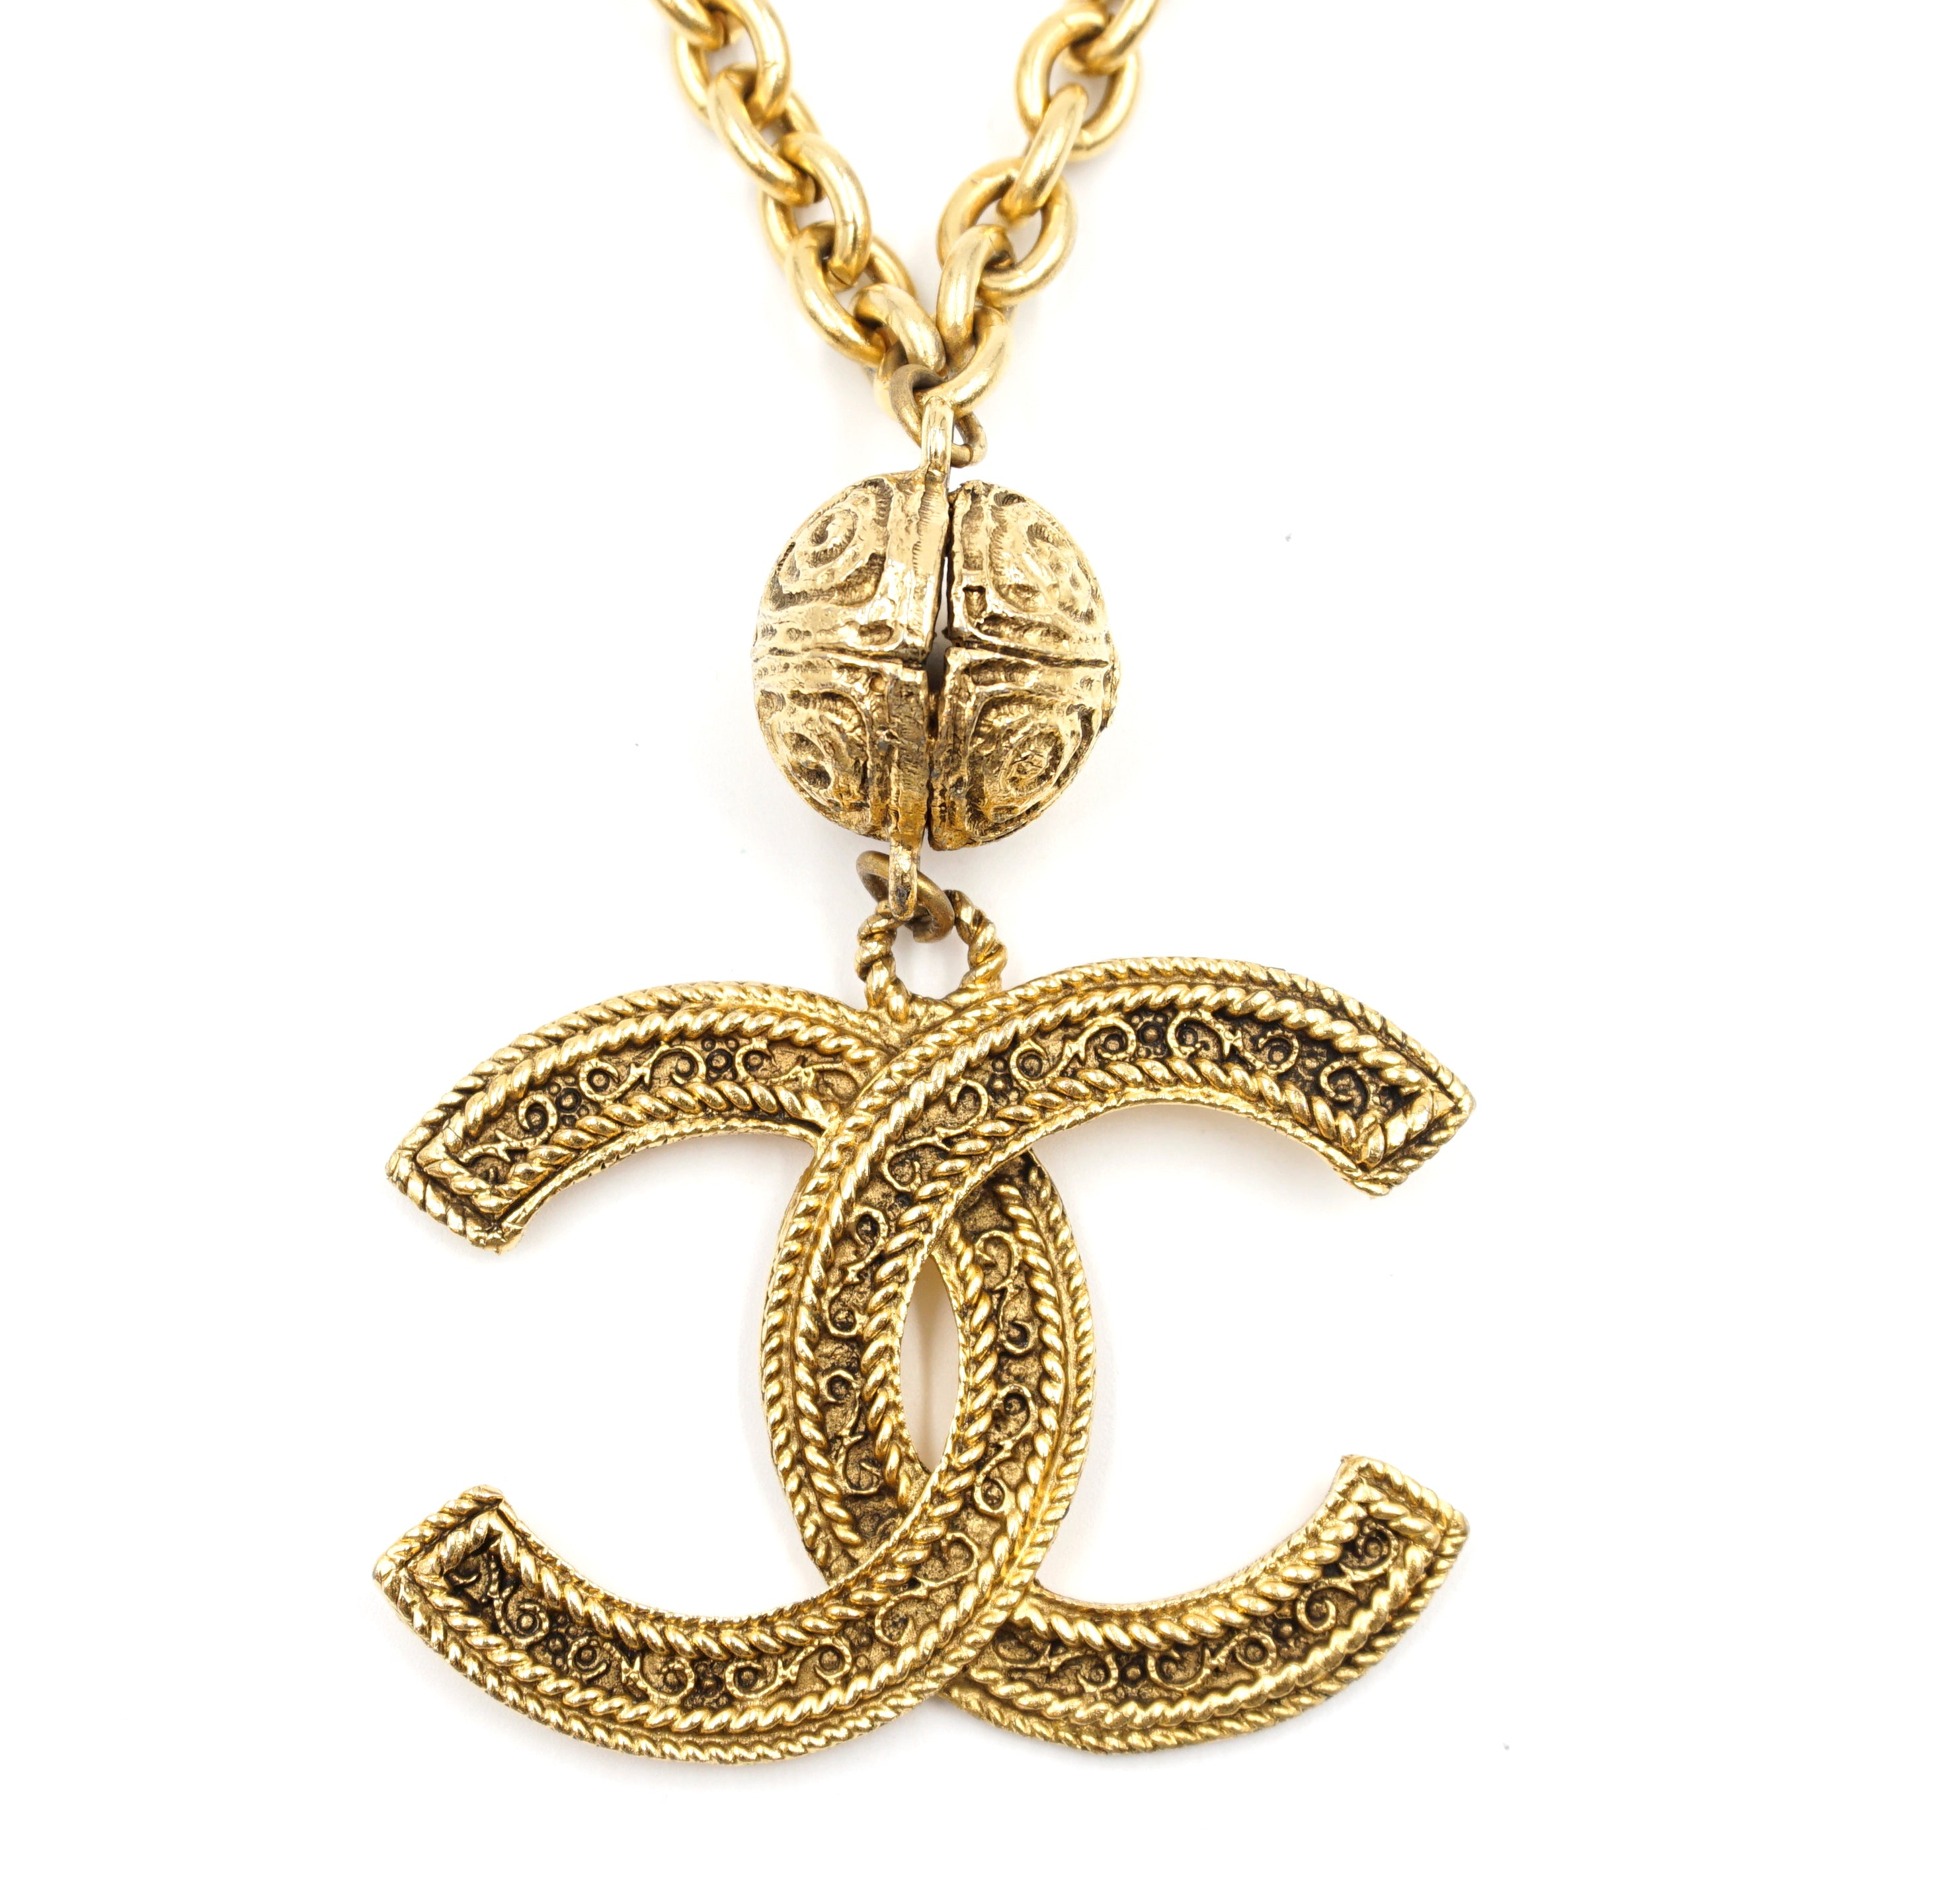 Chanel Gold CC Jumbo Chain Necklace